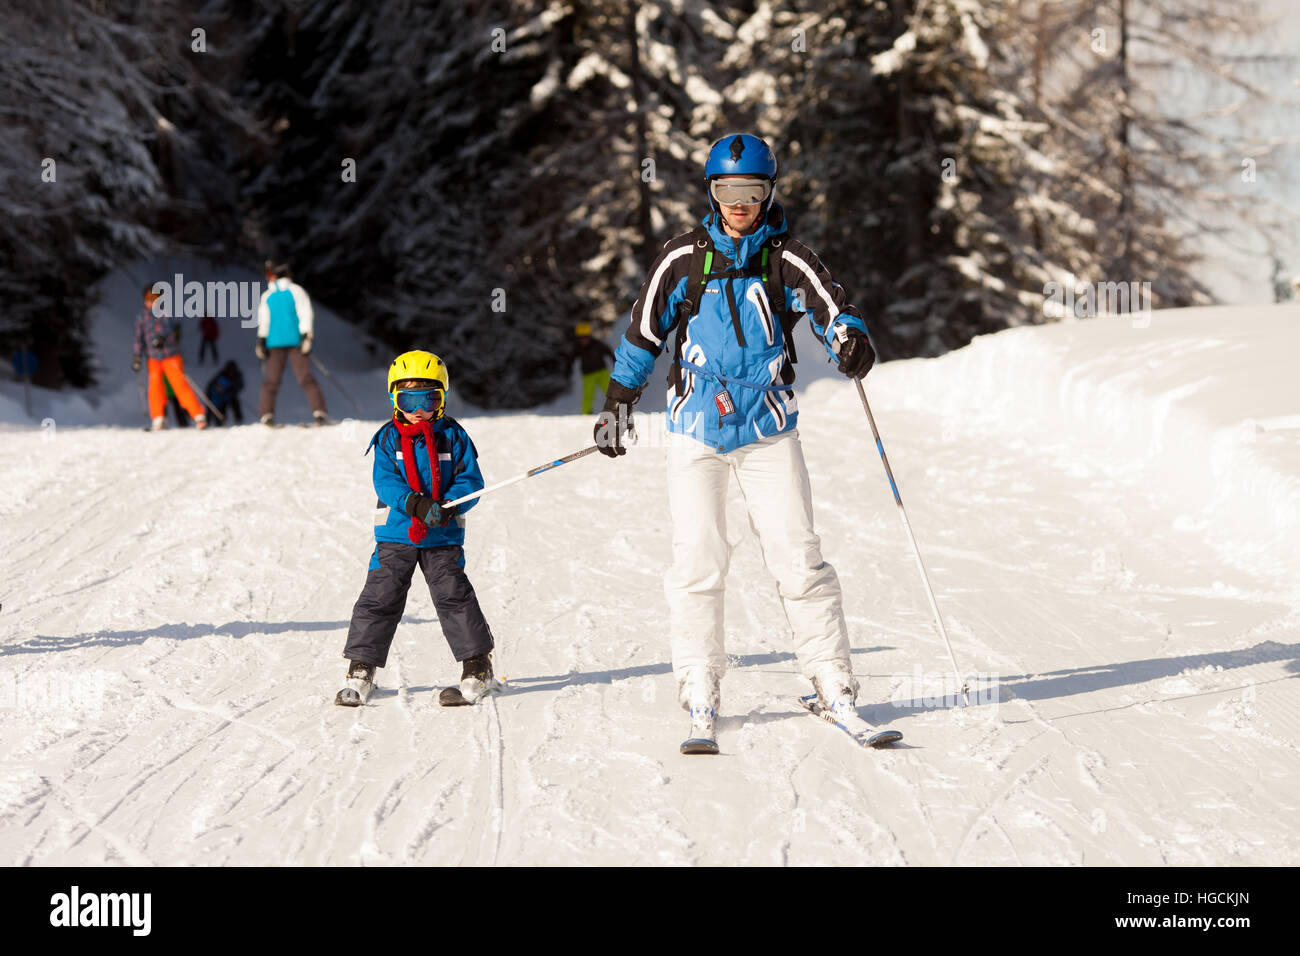 Father and son, preschool child, skiing in austrian ski resort in the mountains, wintertime - Stock Image